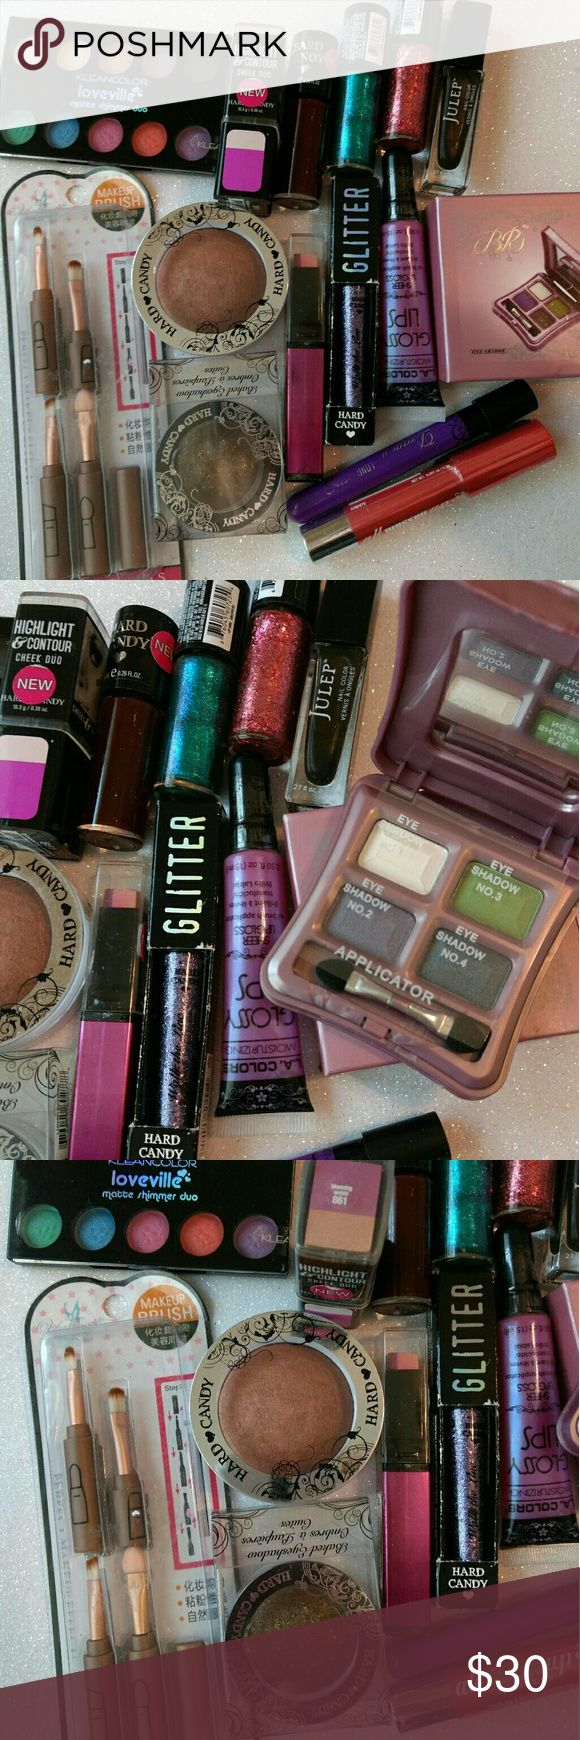 HUGE 15 pcs Makeup Bundle Wholesale!All Brand new,  unopened,  nothing expired,  make-up bundle.  What you see in photo is what you get. Lots of hard candy, and some other brands.  Hard candy is my personal fav!  Add this to your make-up collection or buy to re-sale.  I have a few other make-up bundles I'll be posting.  Discounts on more than one bundle.  Selling low to get rid of my extra stock.  Was selling lots of make-up on another app,  and this is the last of it...taking a break for…